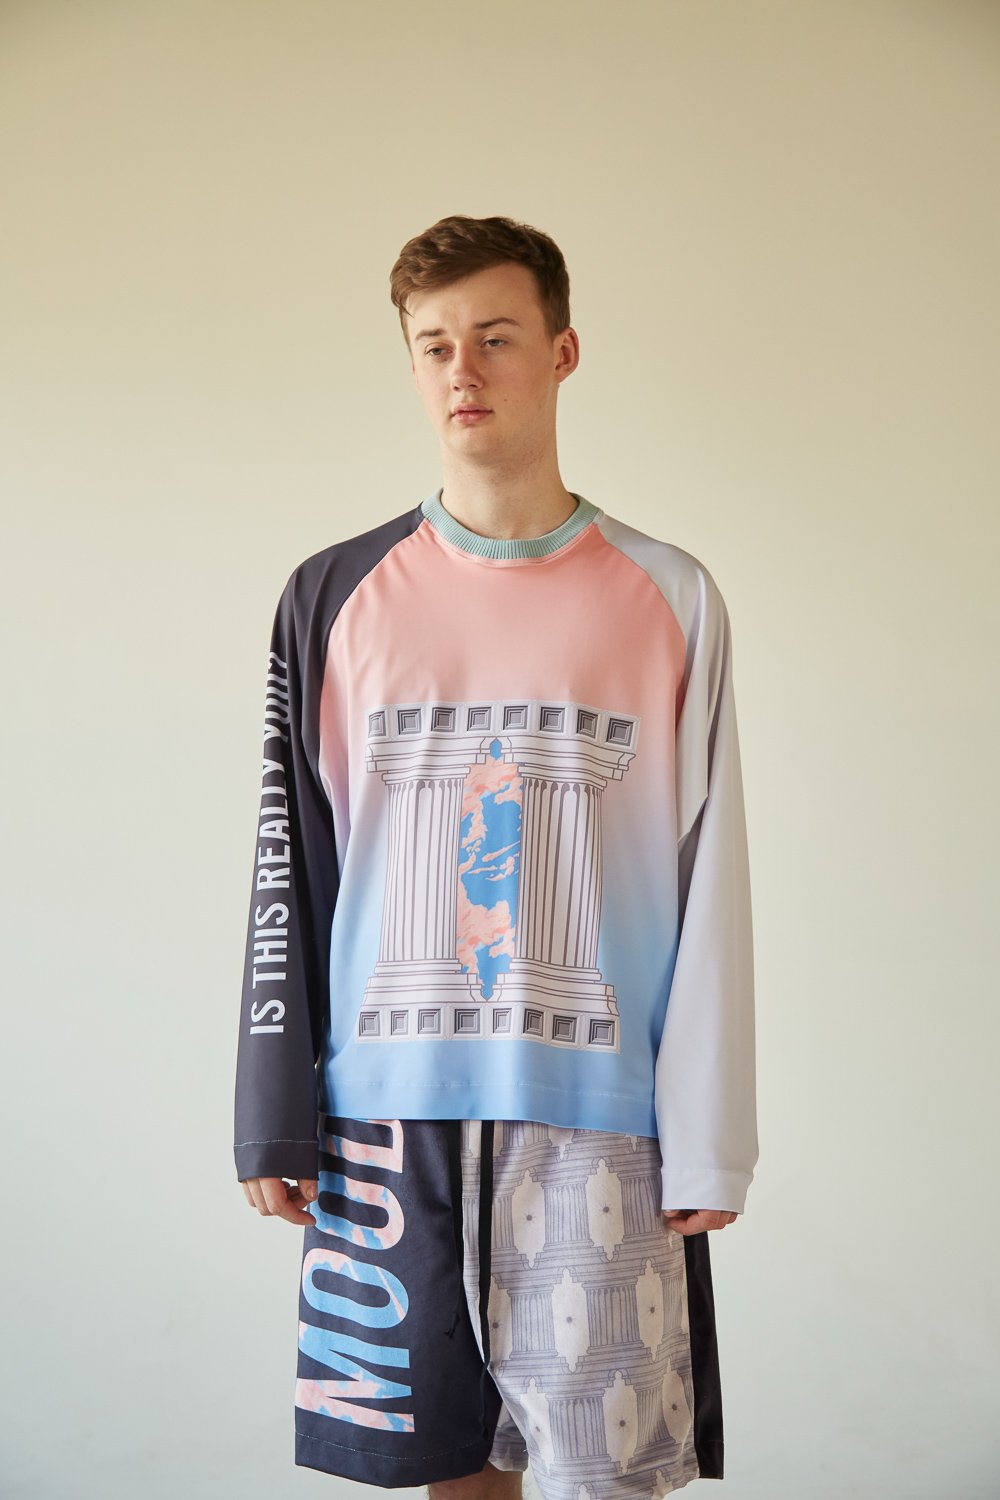 EXISTENTIAL DAVID LONG SLEEVE TEE - Boy Mode